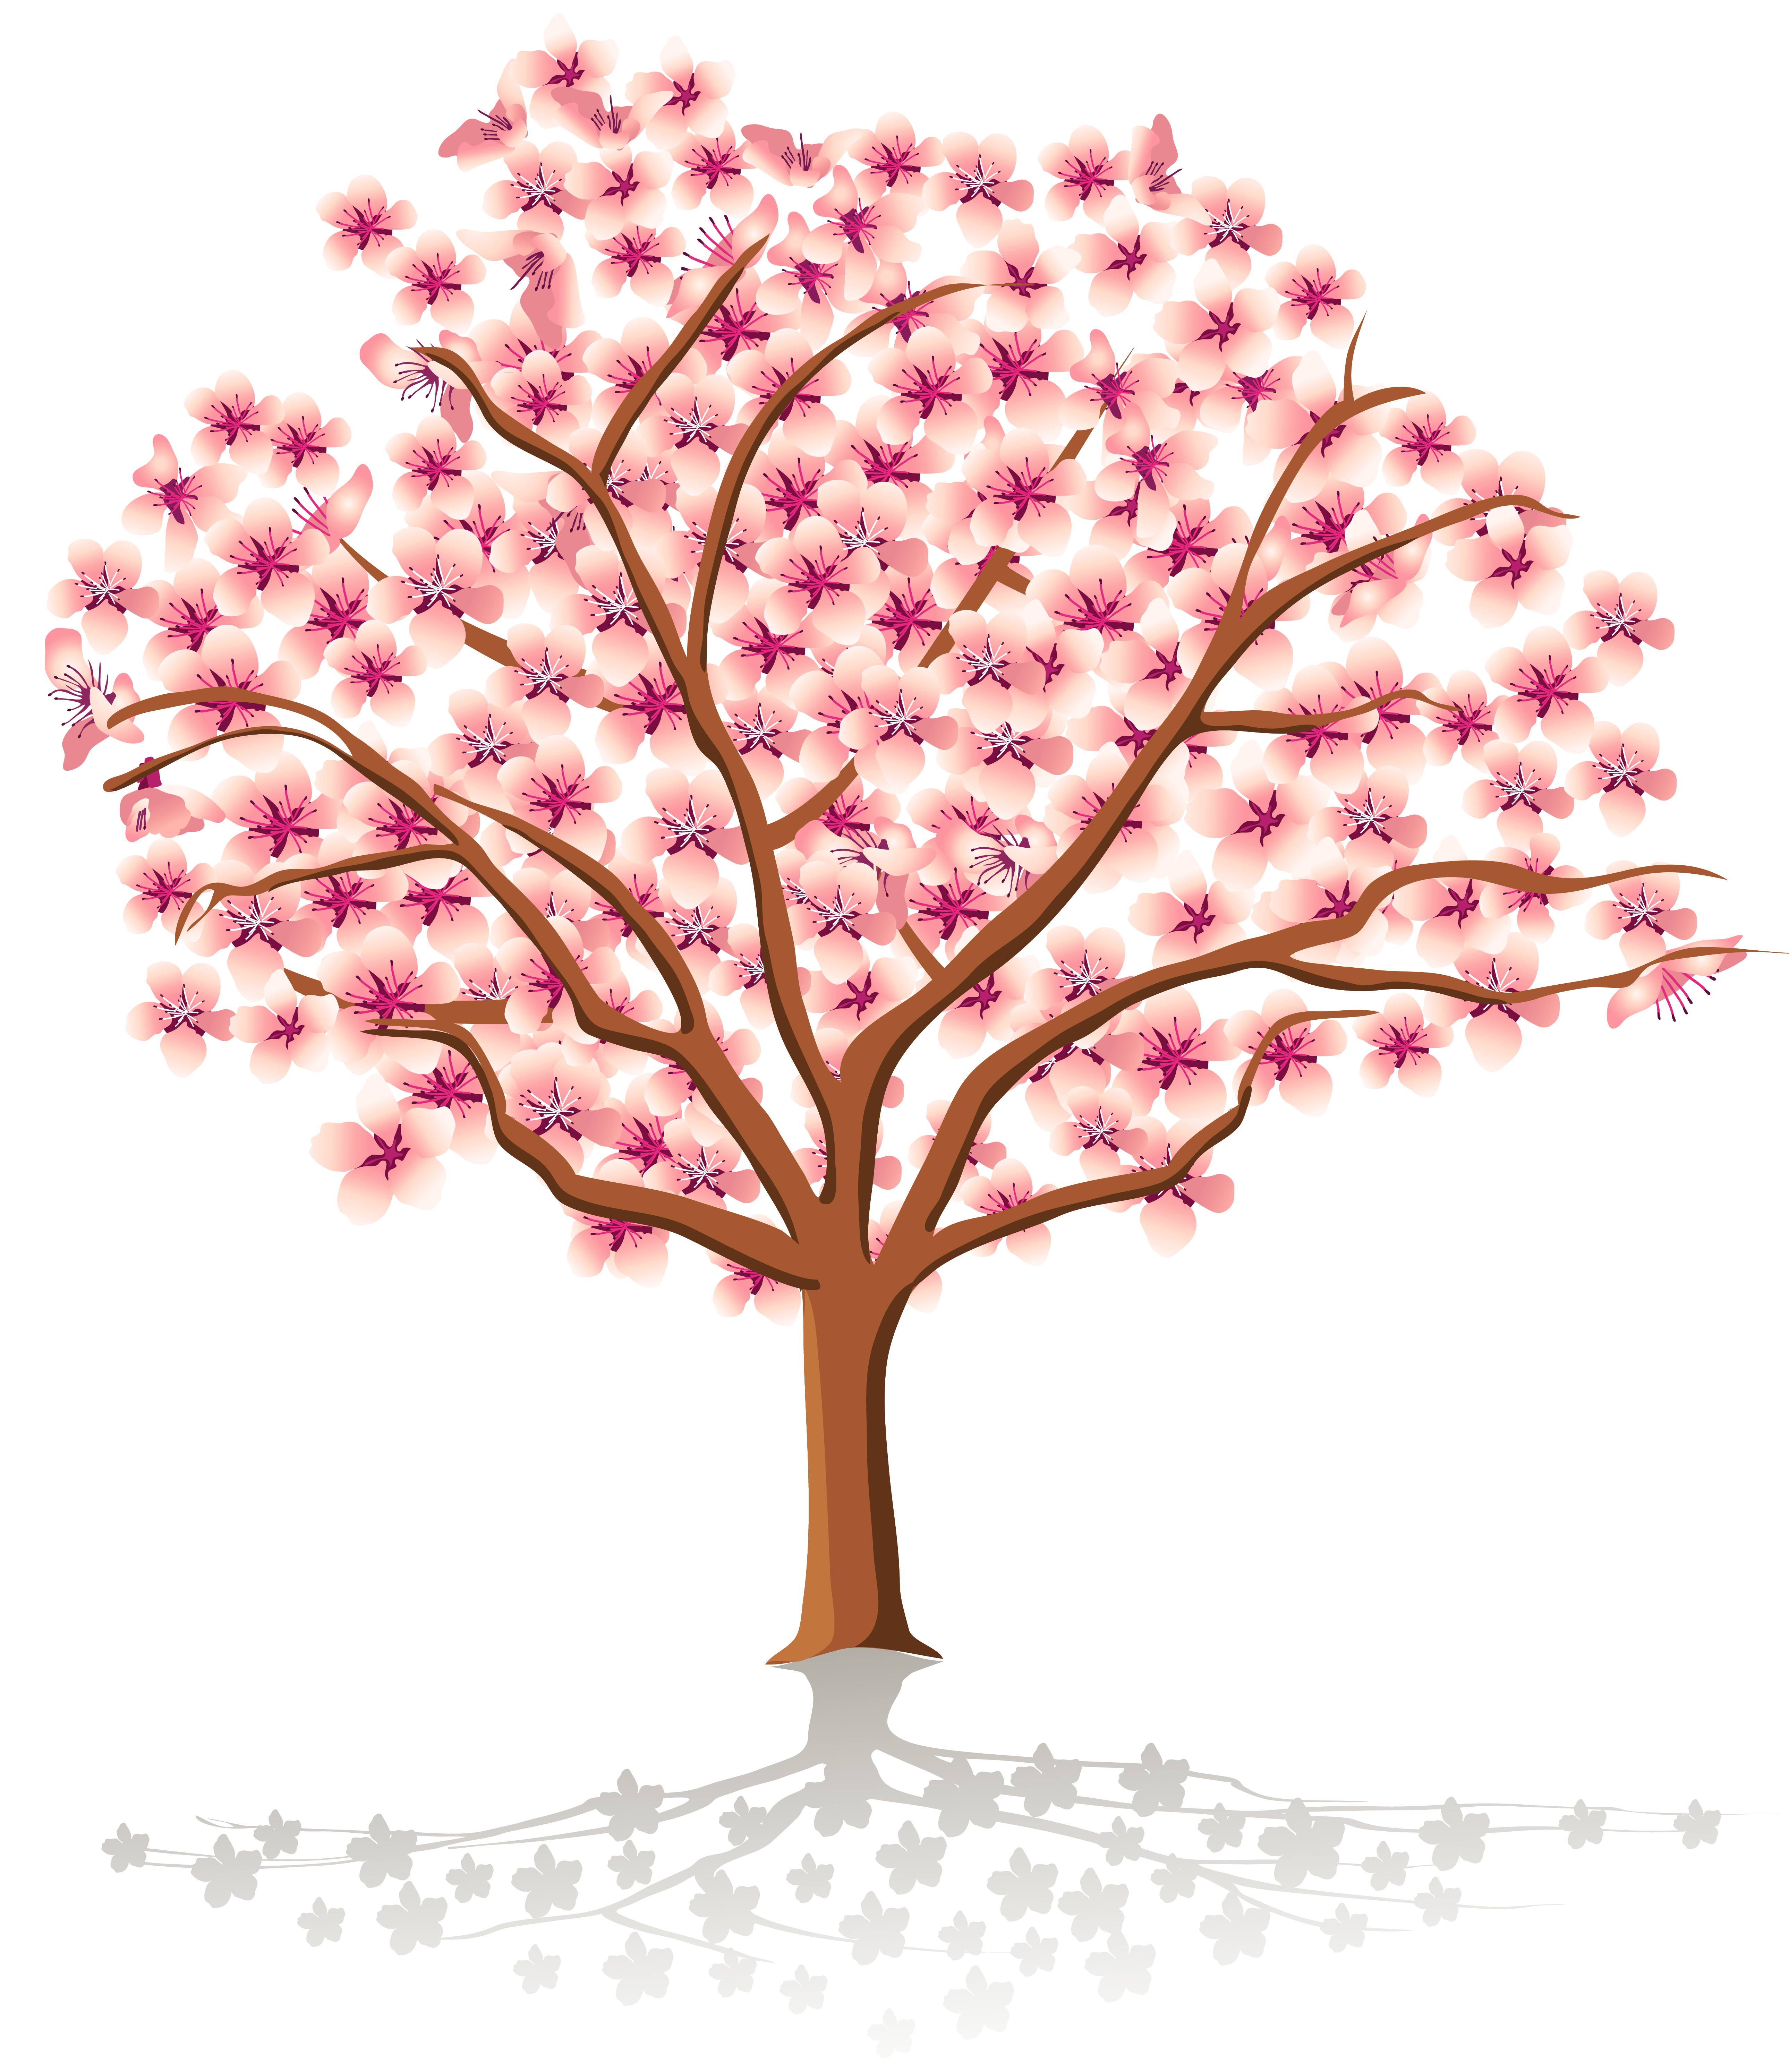 Cherry Tree clipart spring bird Spring free collection clipart Tree